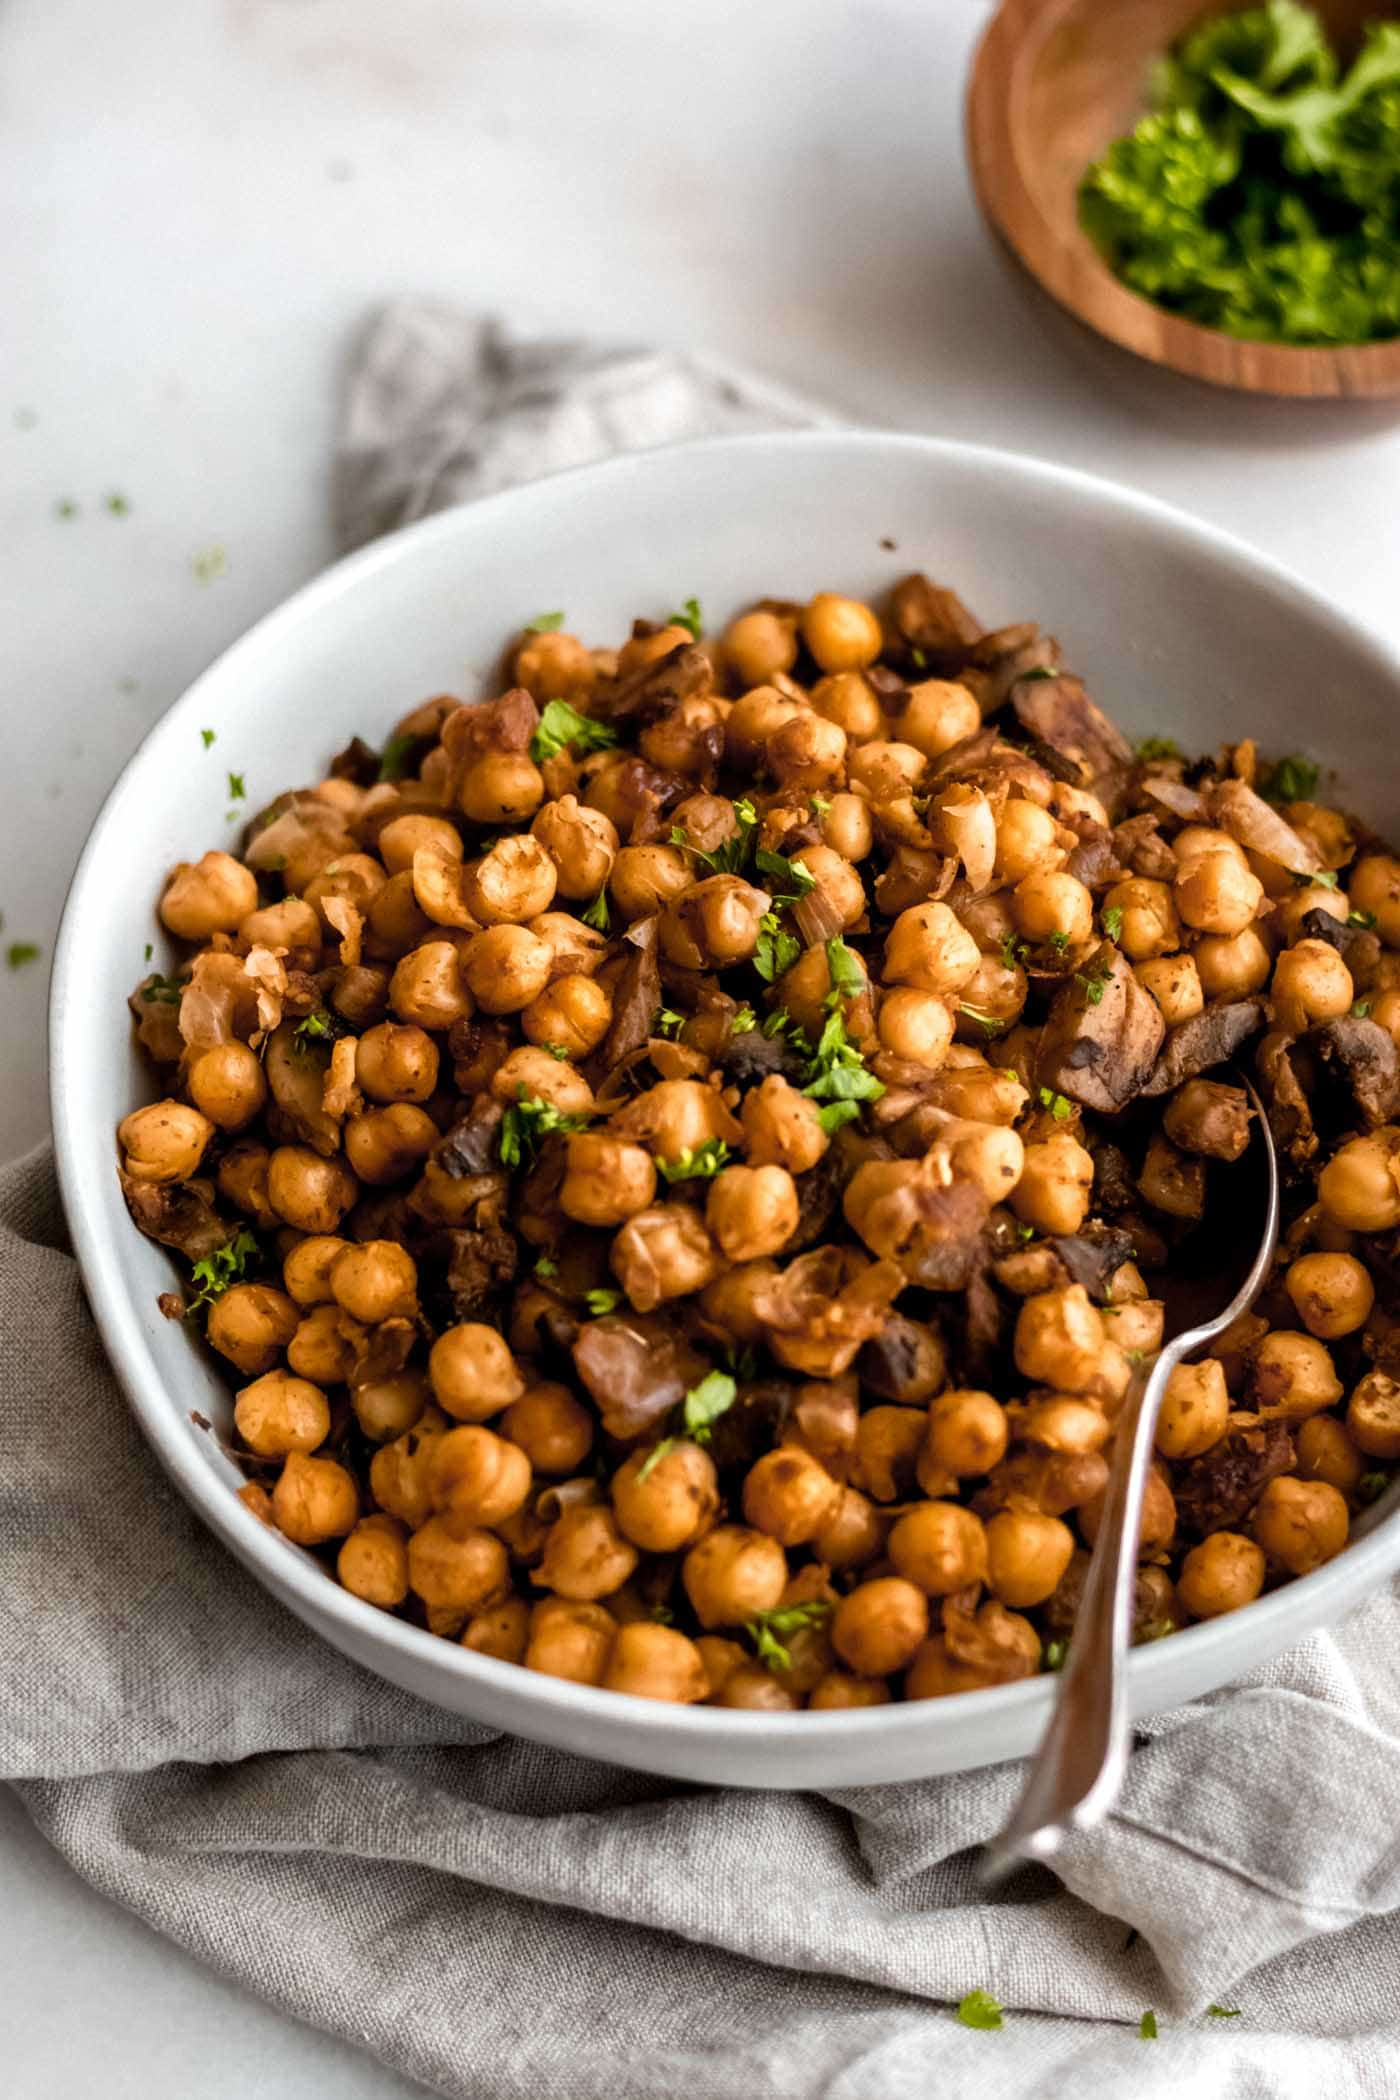 Spiced chickpeas in a large white bowl.